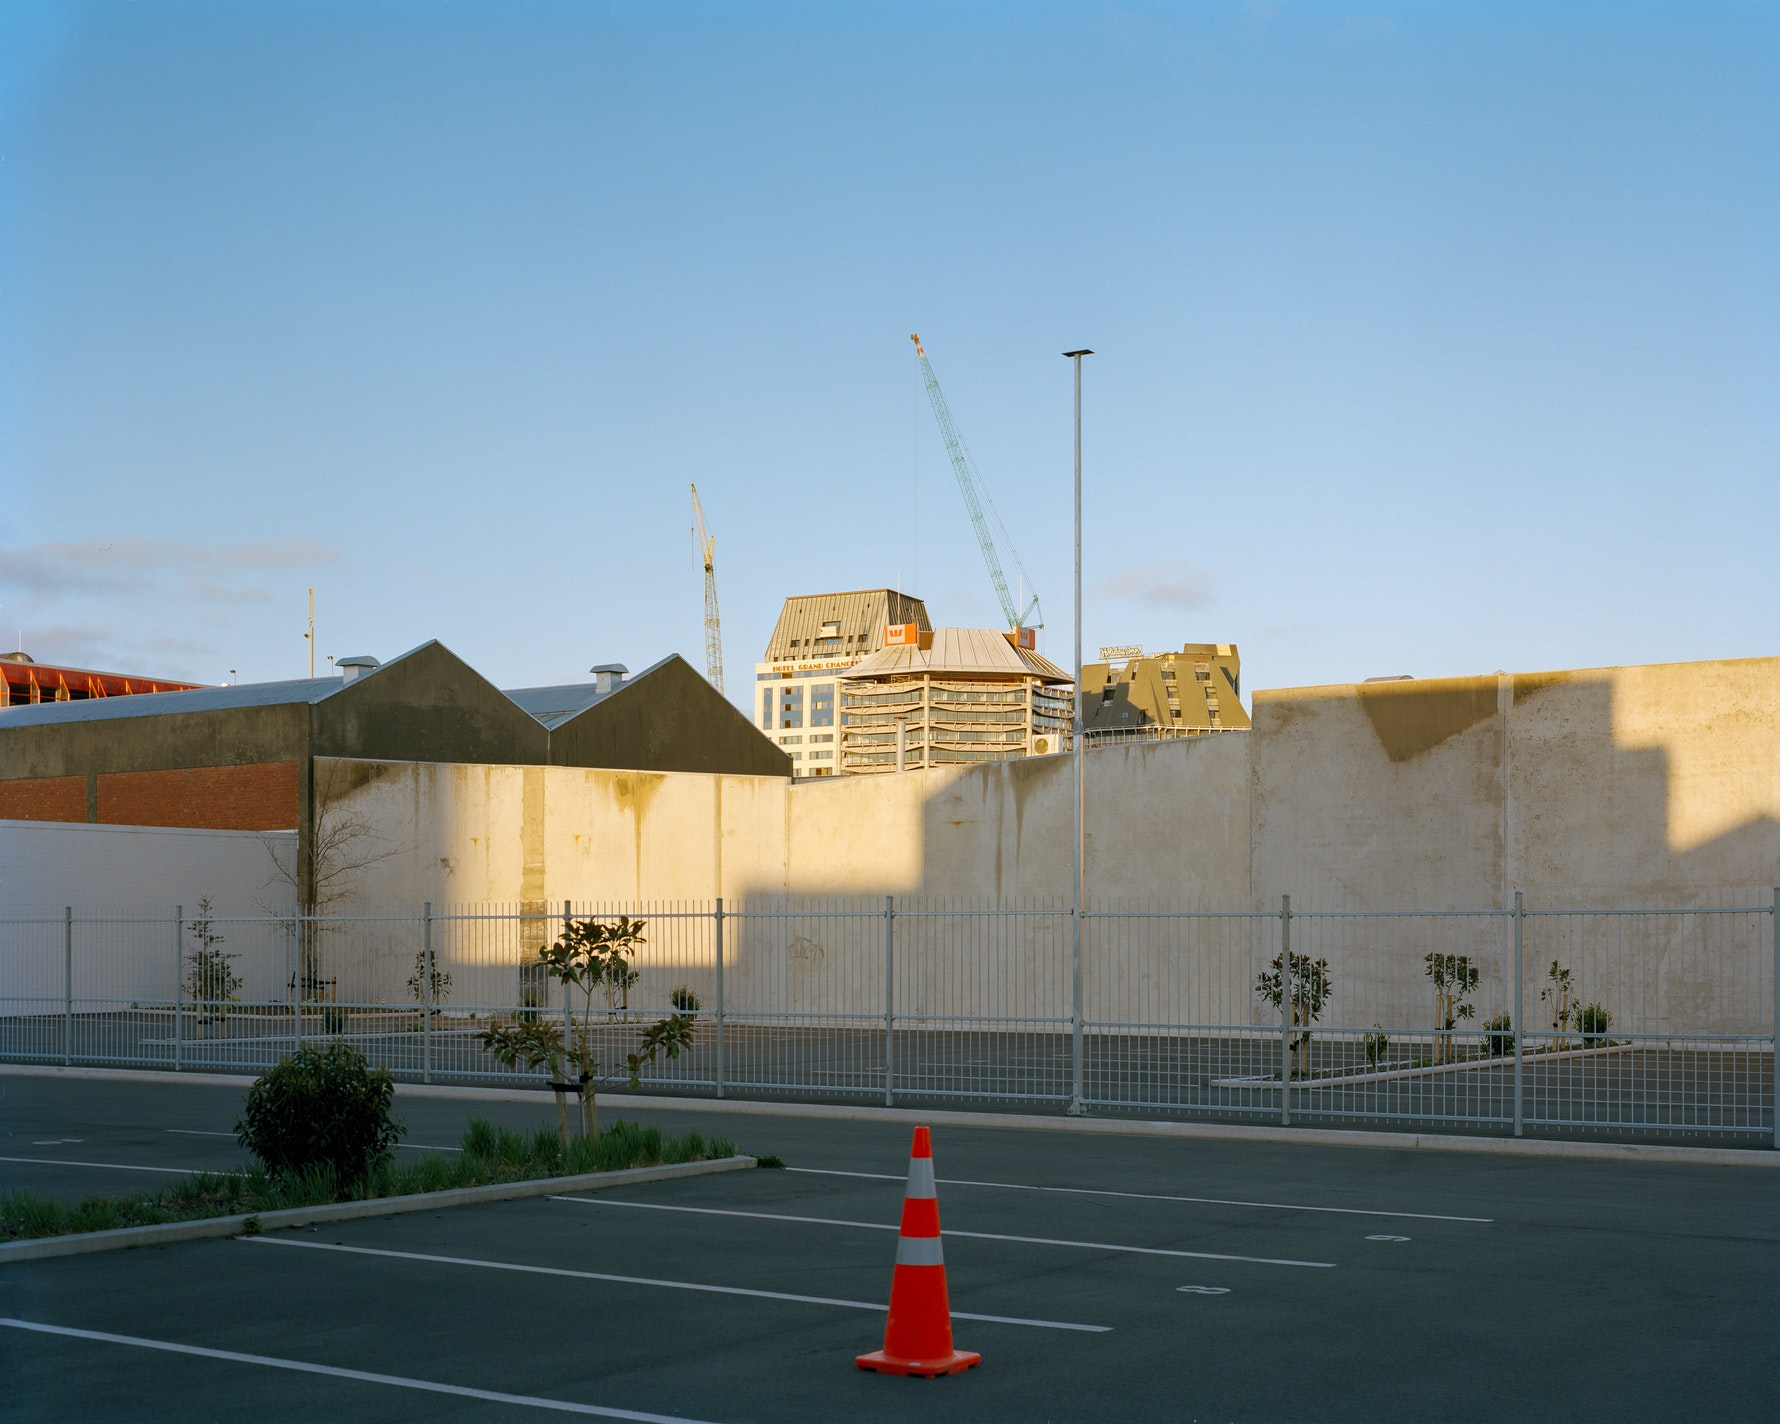 Towards Hotel Grand Chancellor, Holiday Inn and Westpac buildings, from corner of Tuam and Durham Streets, 2011.